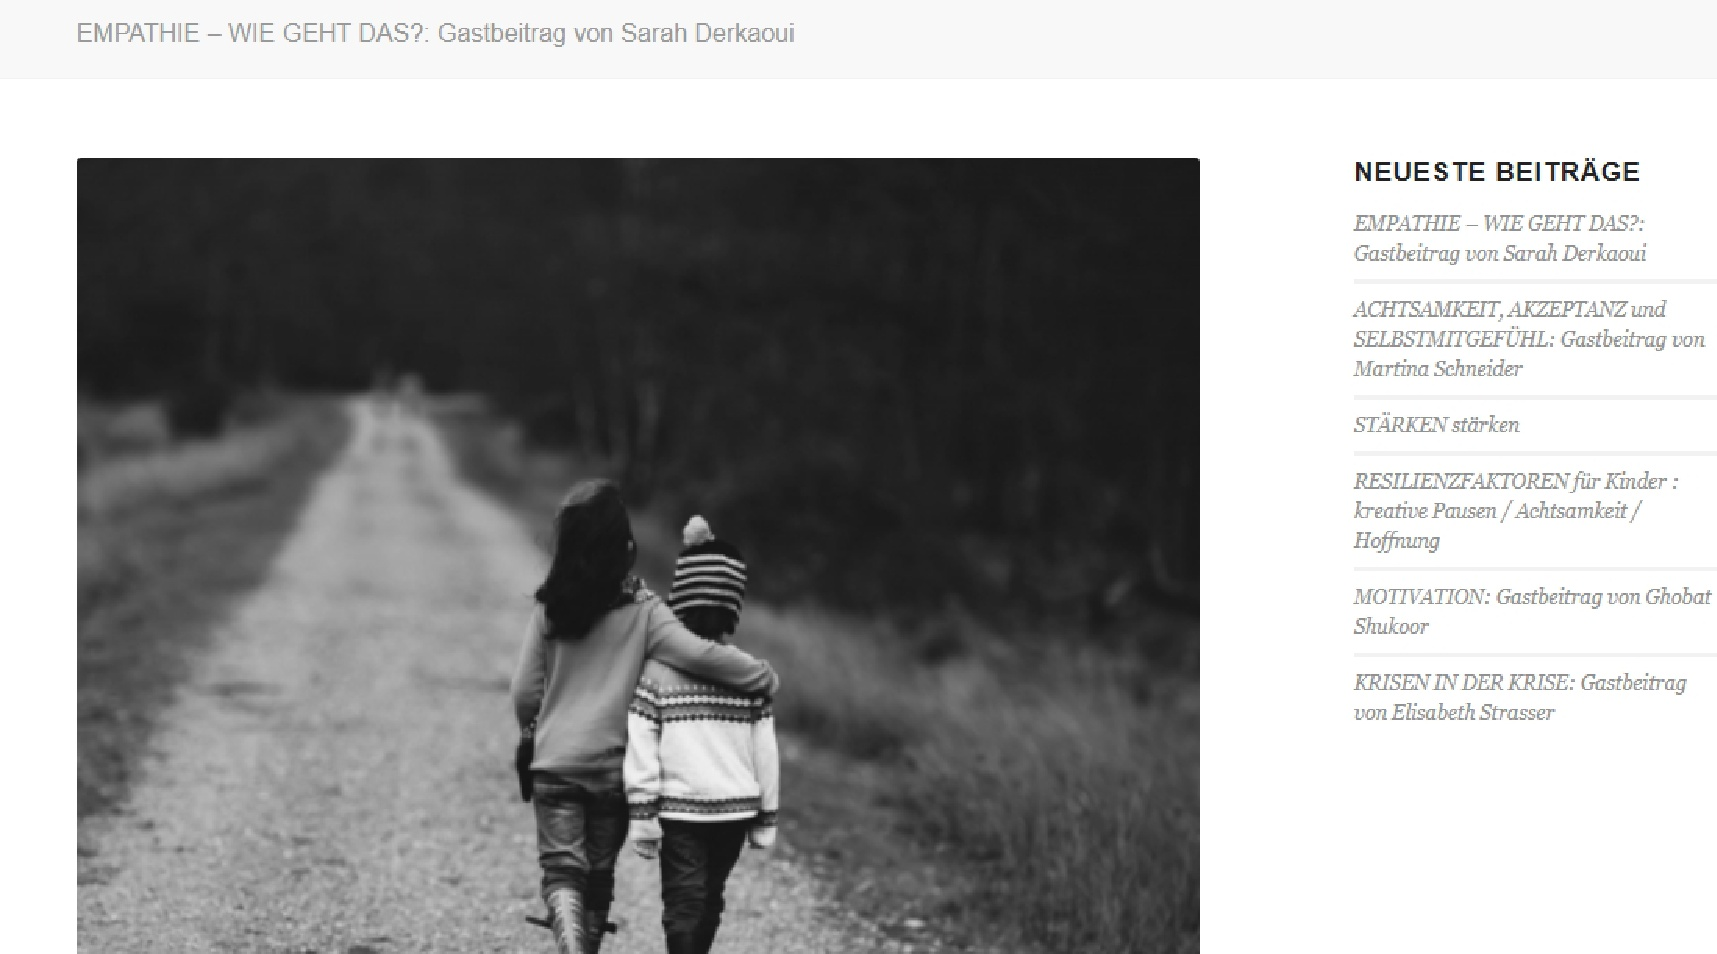 Blogtext zum Thema Empathie